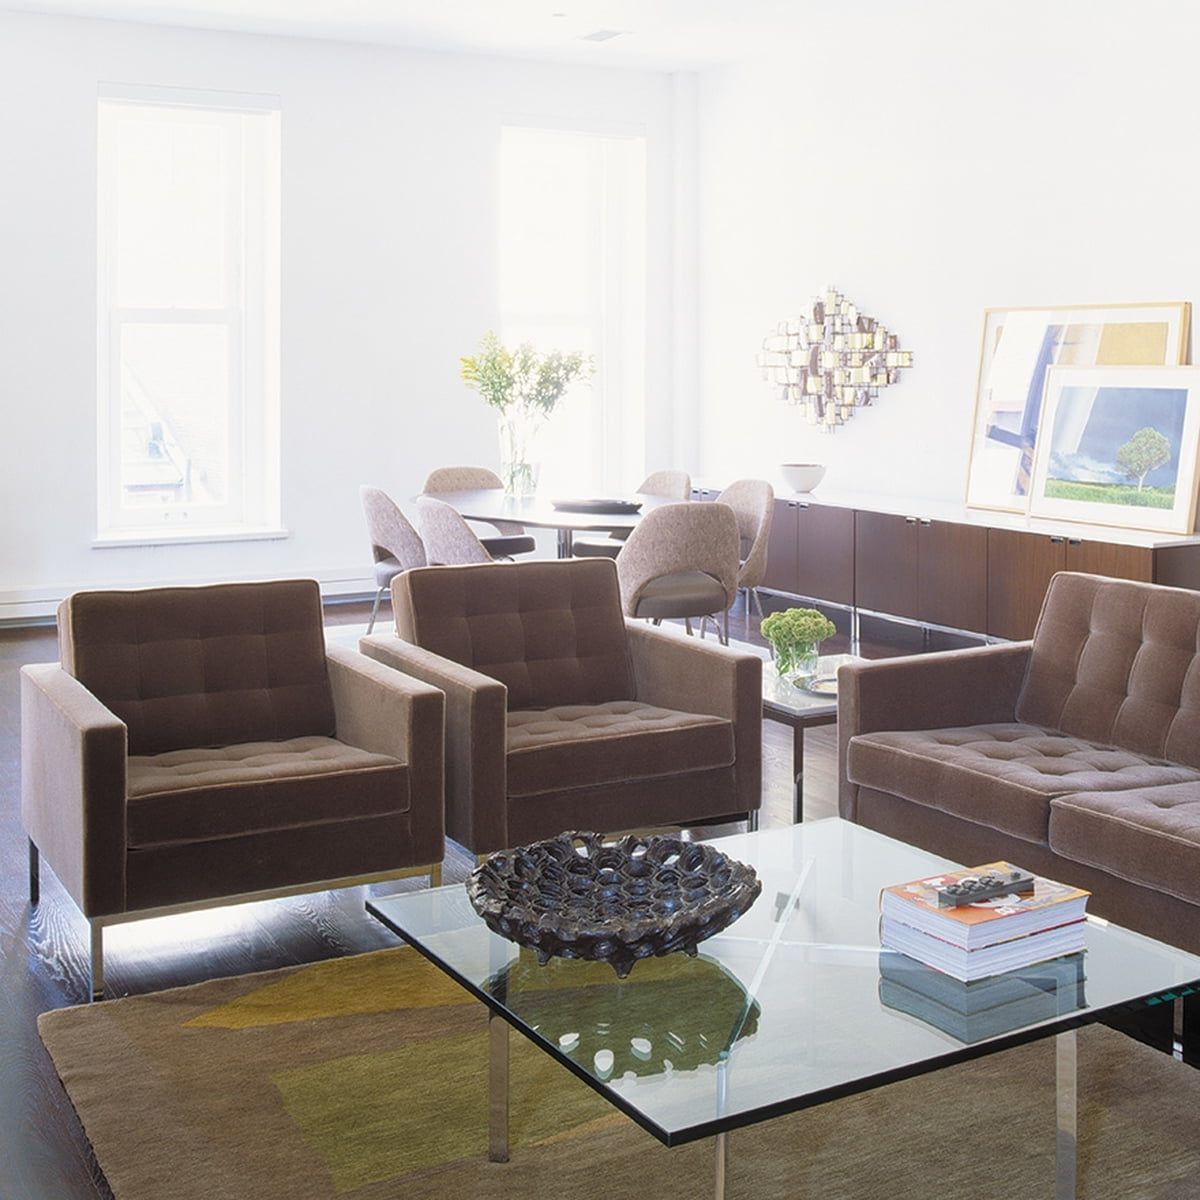 Knoll Florence 3 Seats Sofa In The Shop Throughout Popular Florence Knoll Living Room Sofas (Gallery 1 of 15)